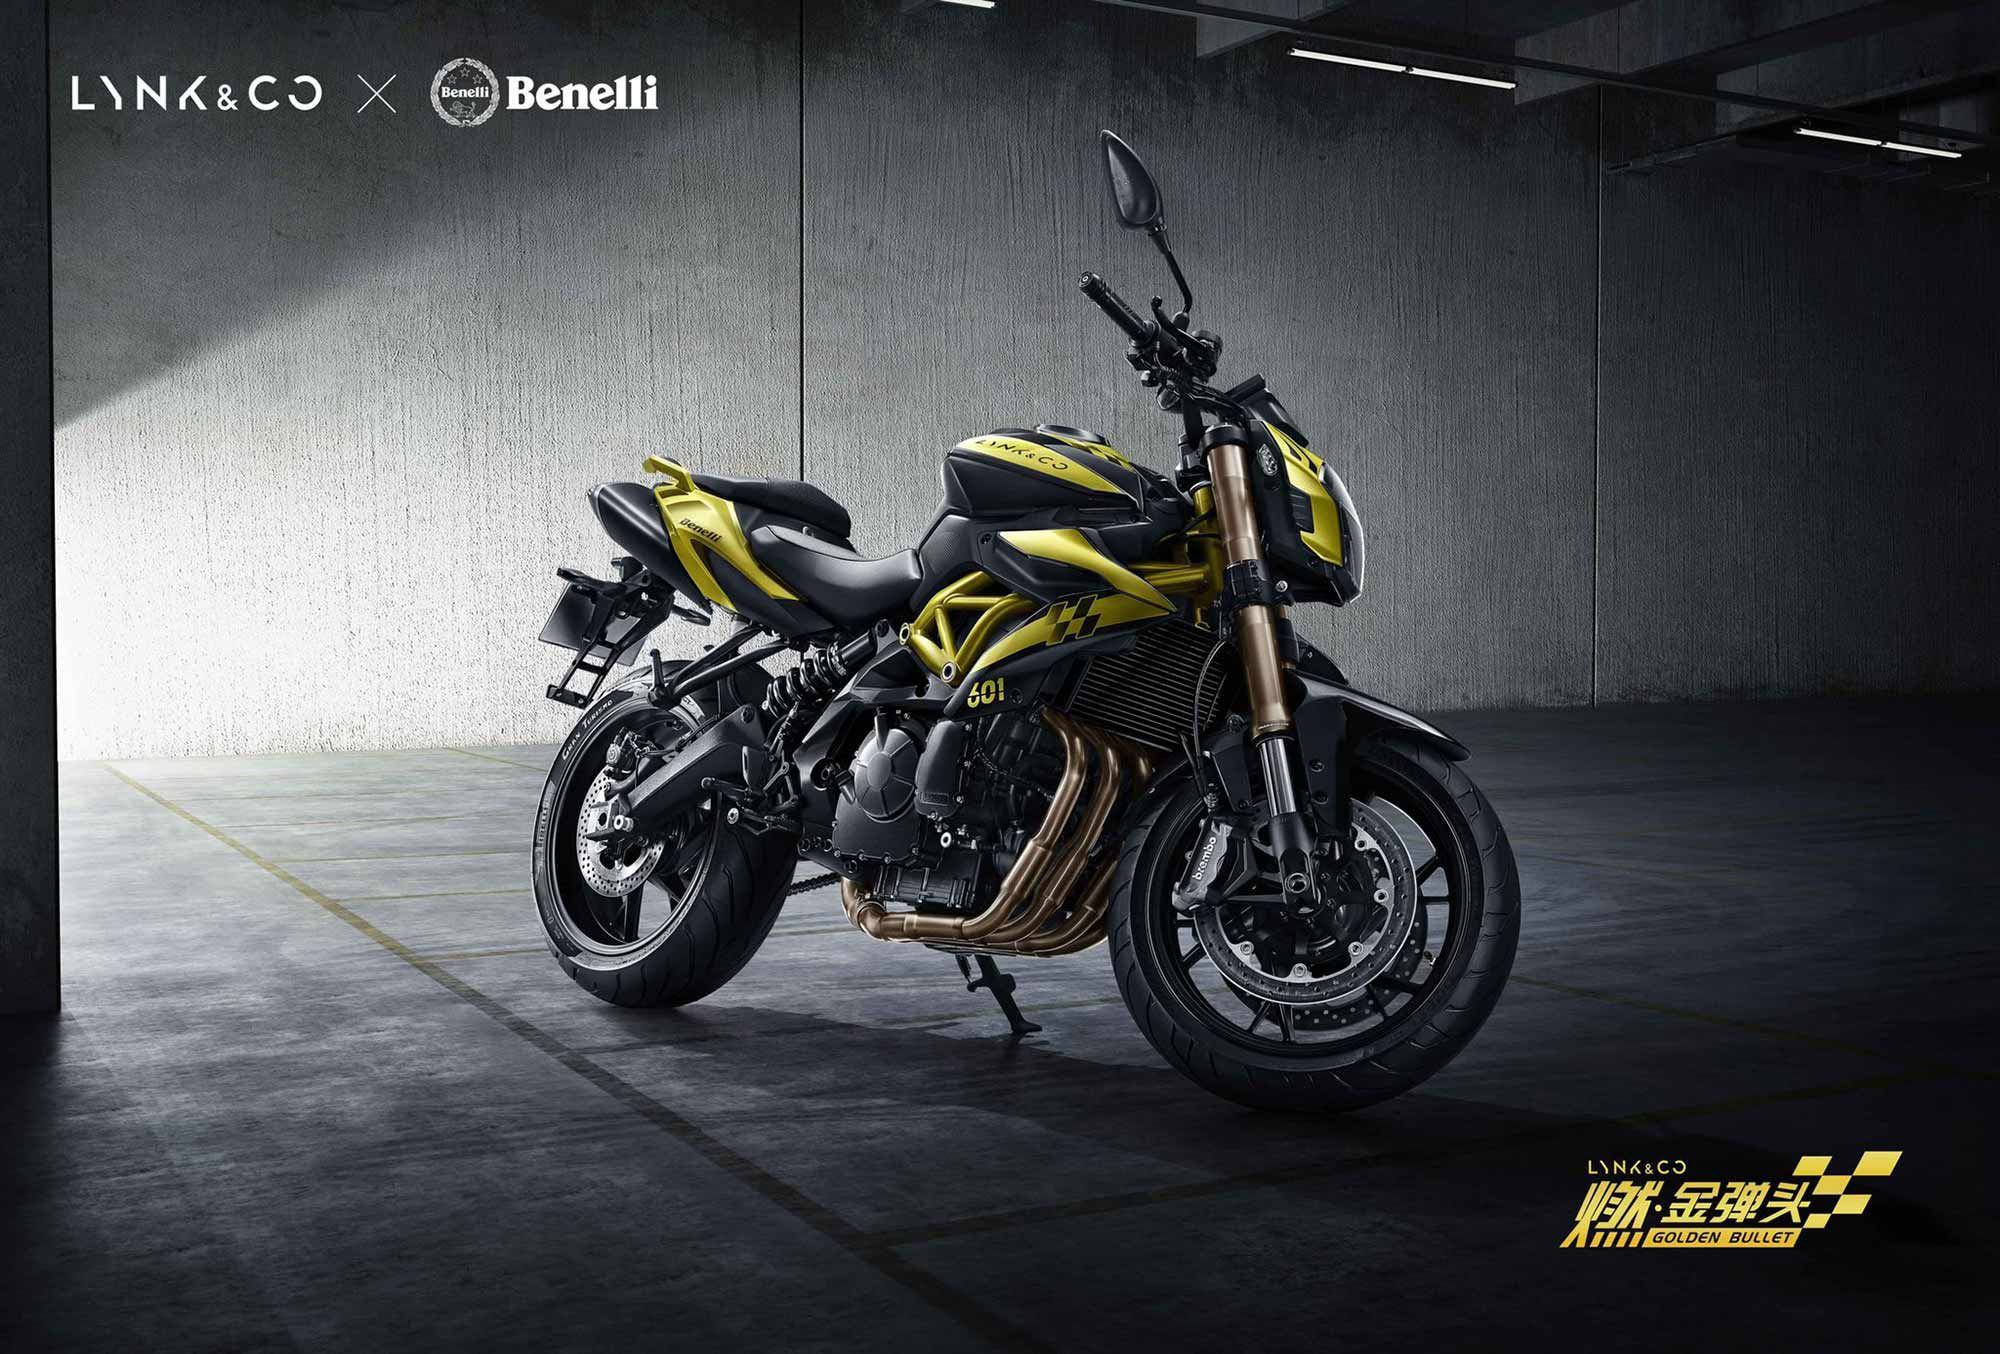 Lynk & Co Enter the Motorcycle Market